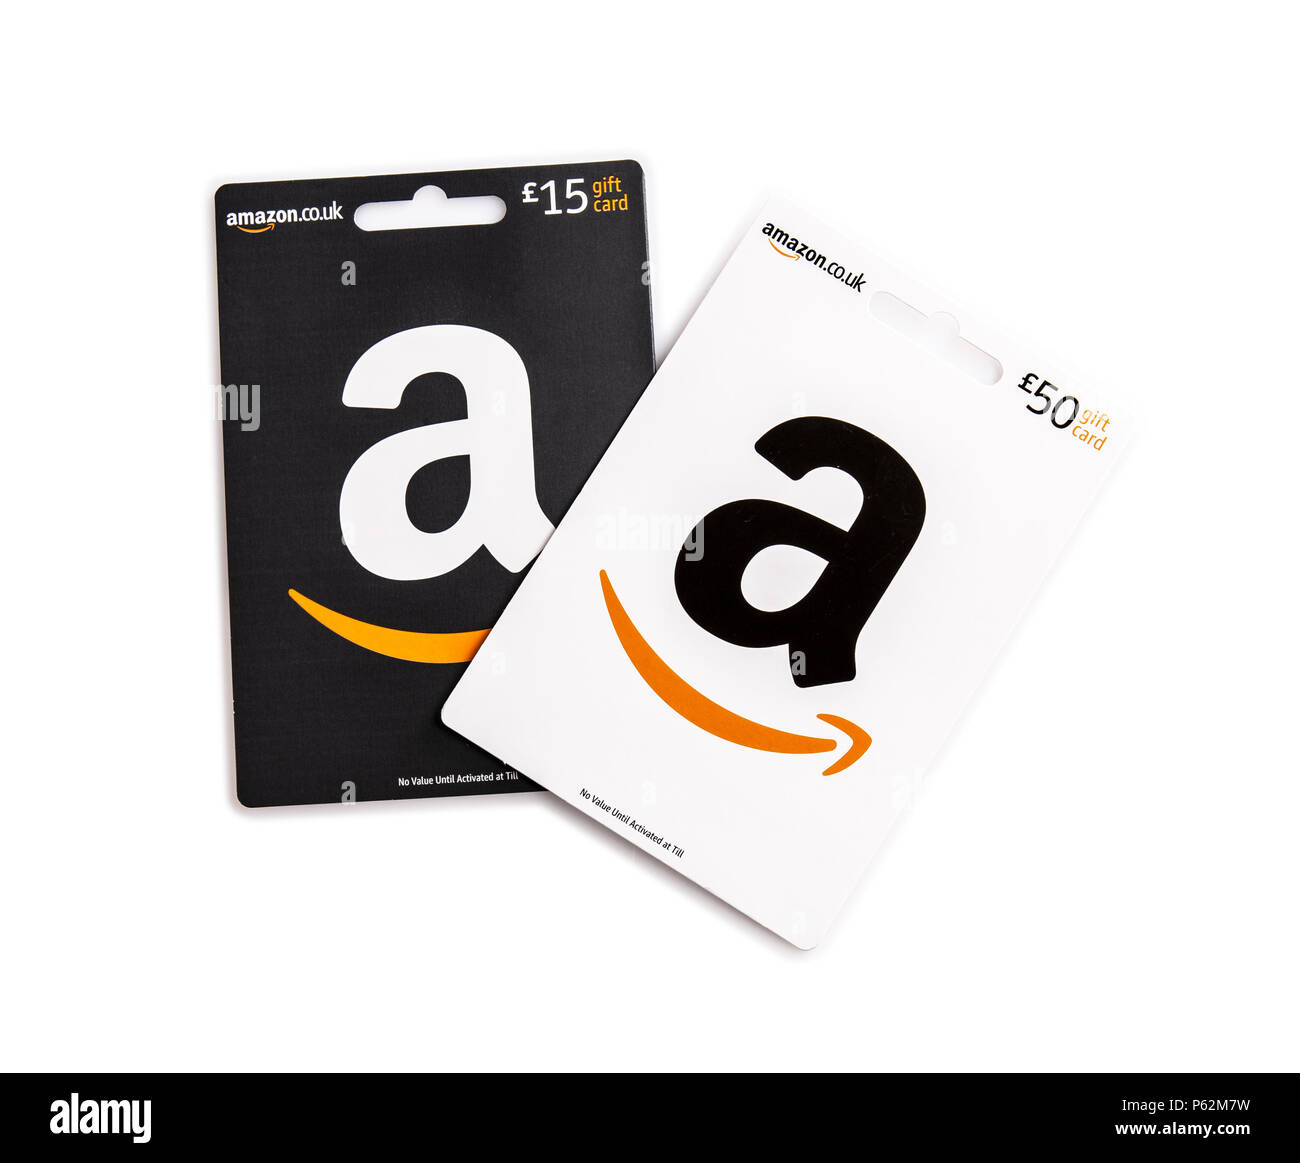 Swindon Uk June 27 2018 Two Amazon Gift Cards On A White